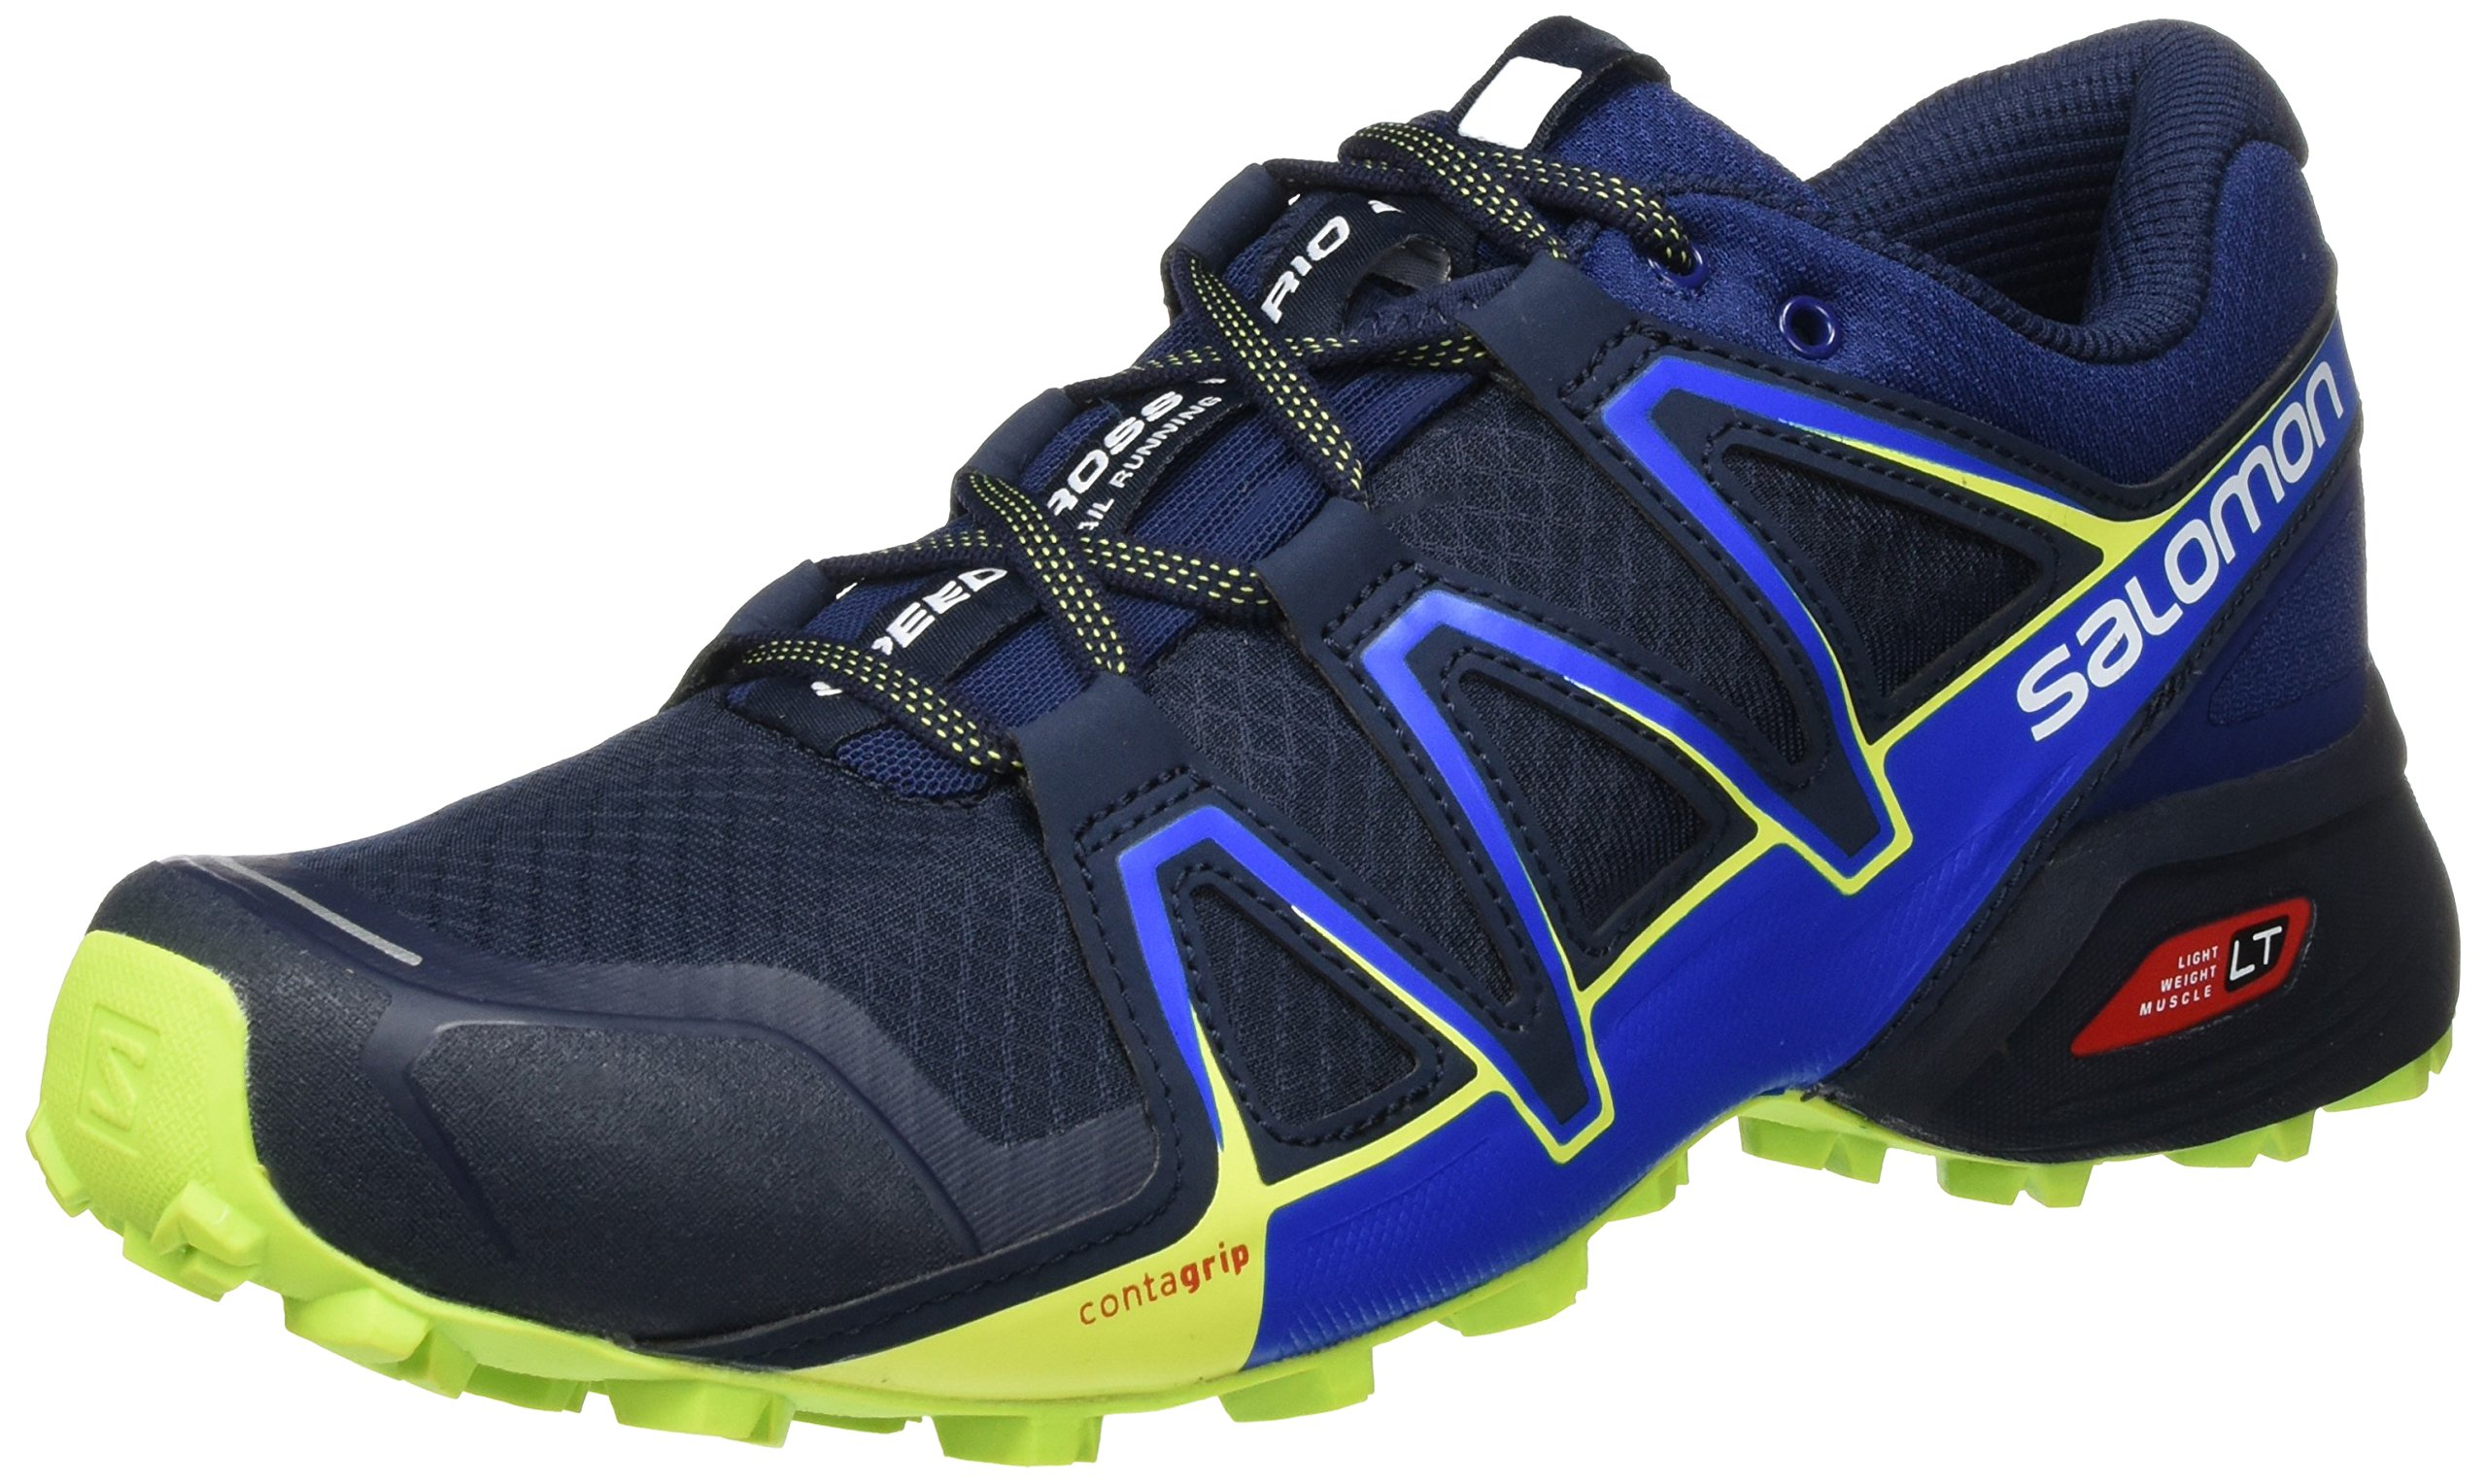 Salomon Men's Speedcross Vario 2 Trail-Runners, Navy Blazer, 9.5 M US